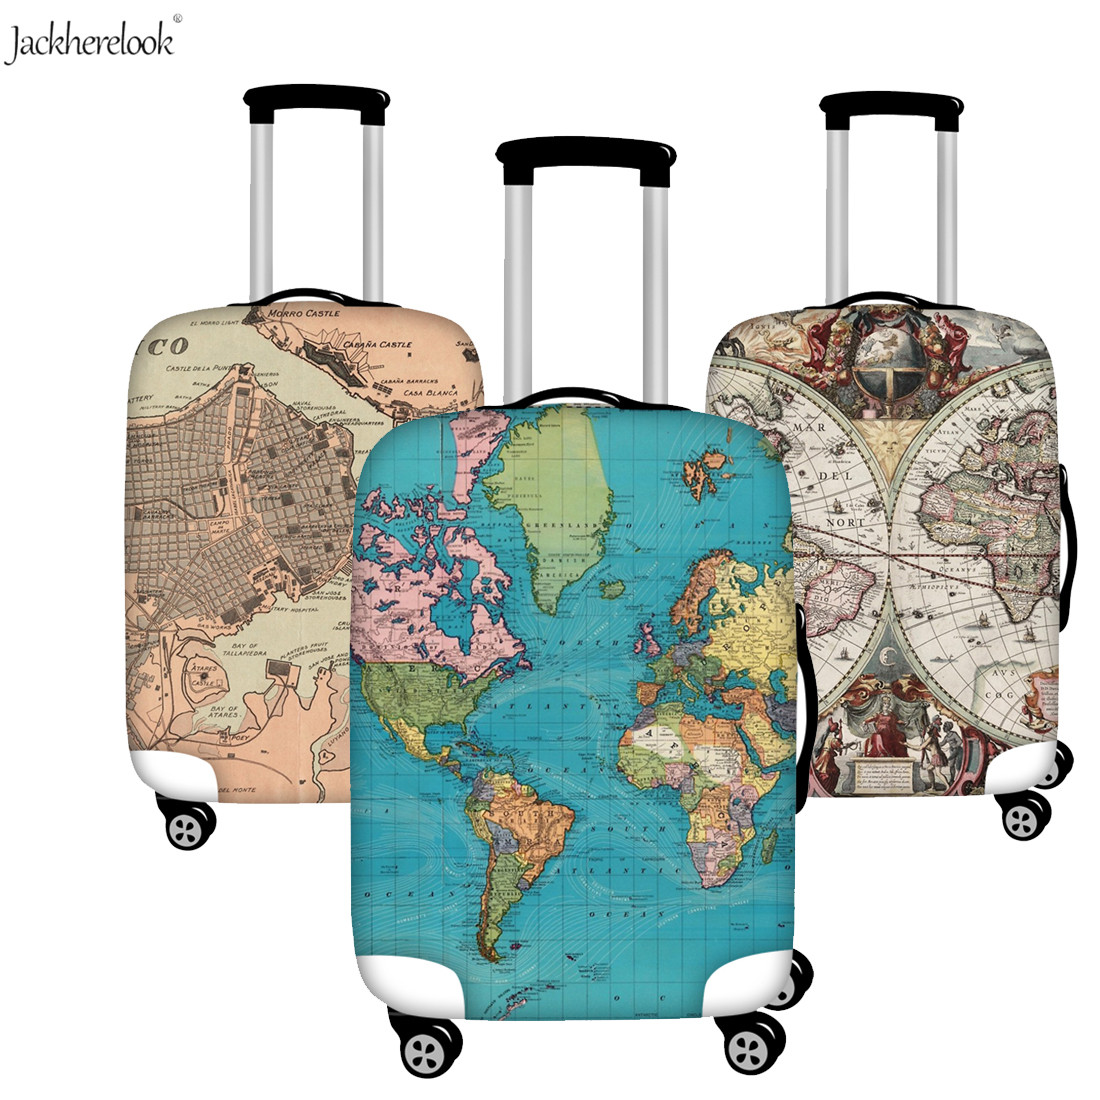 Jackherelook 3D World Map Printed Suitcase Cover Travel On Road Protect Case Travel Accessories Vintage Map Luggage/baggage Case